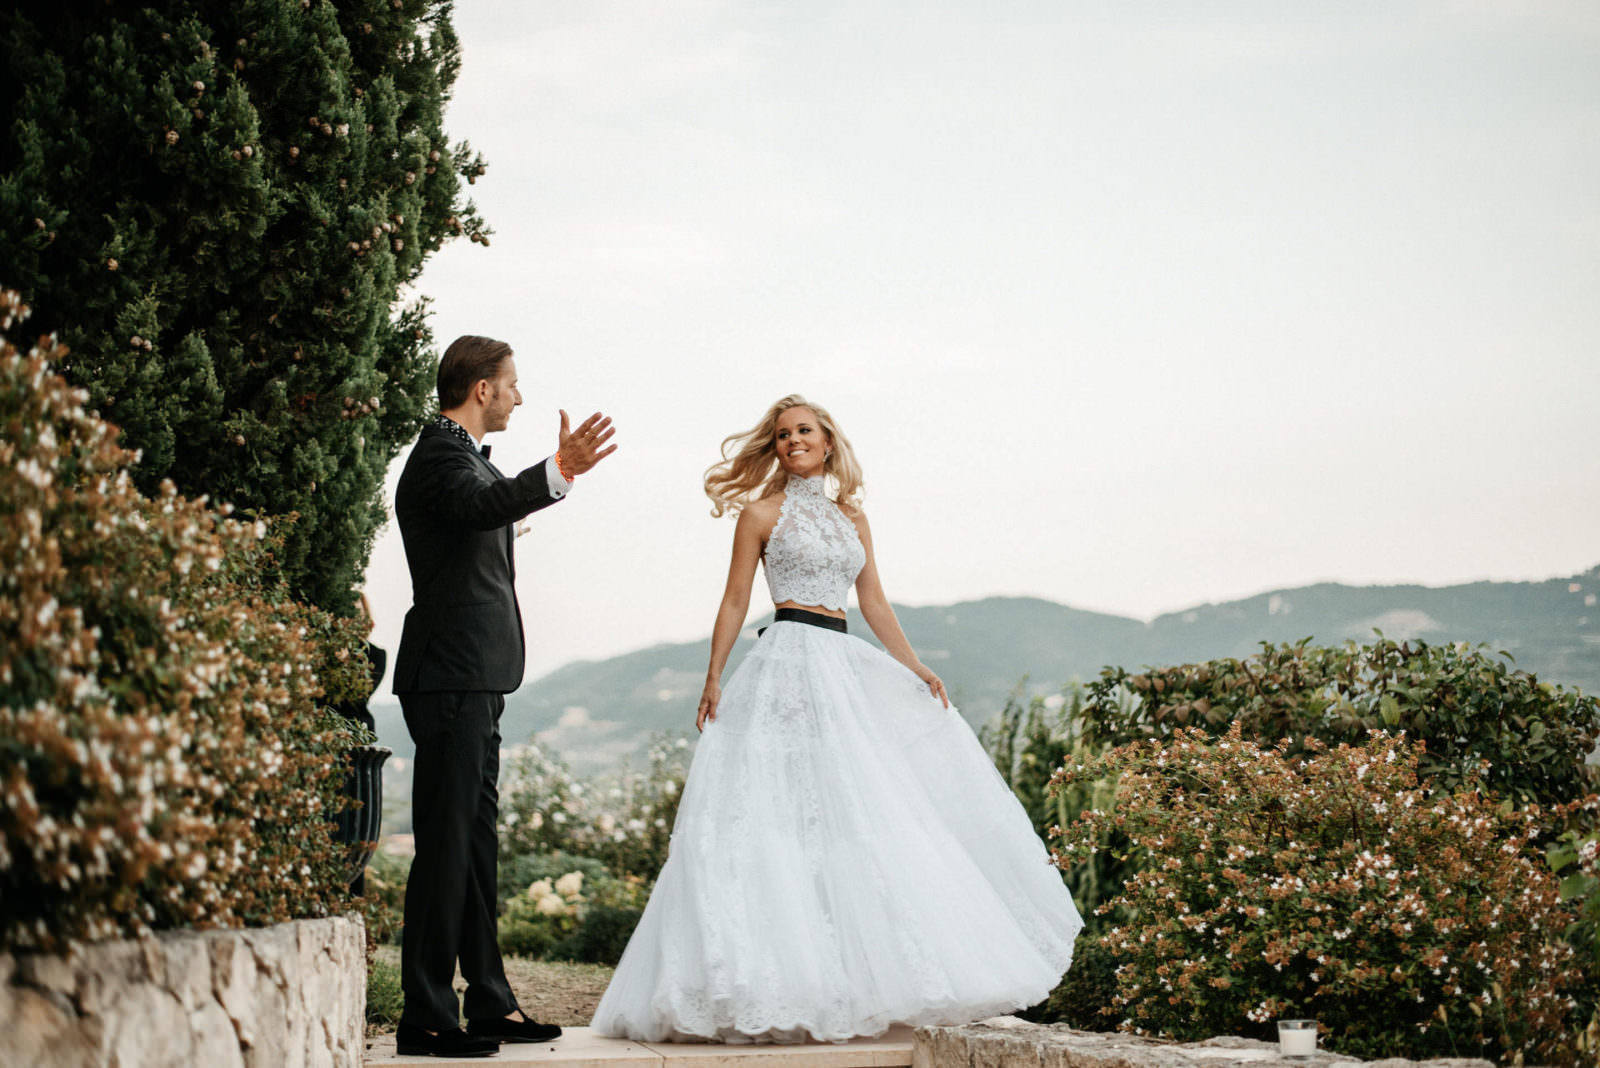 julia_manuel_112_italy_wedding